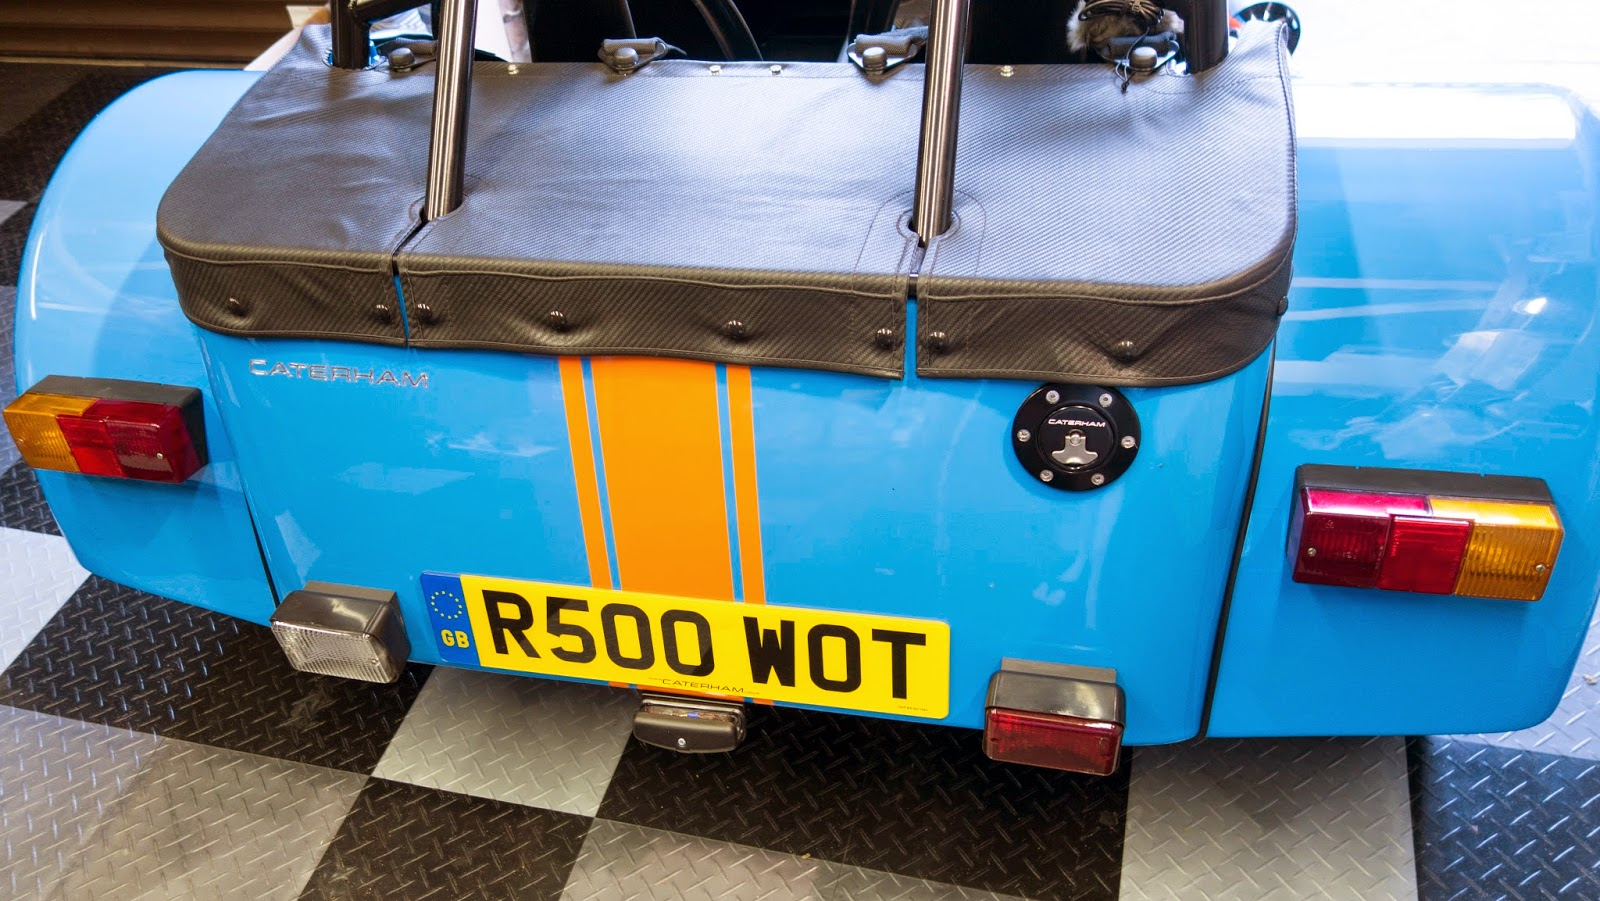 Caterham R500 with standard rear indicators and light blocks.